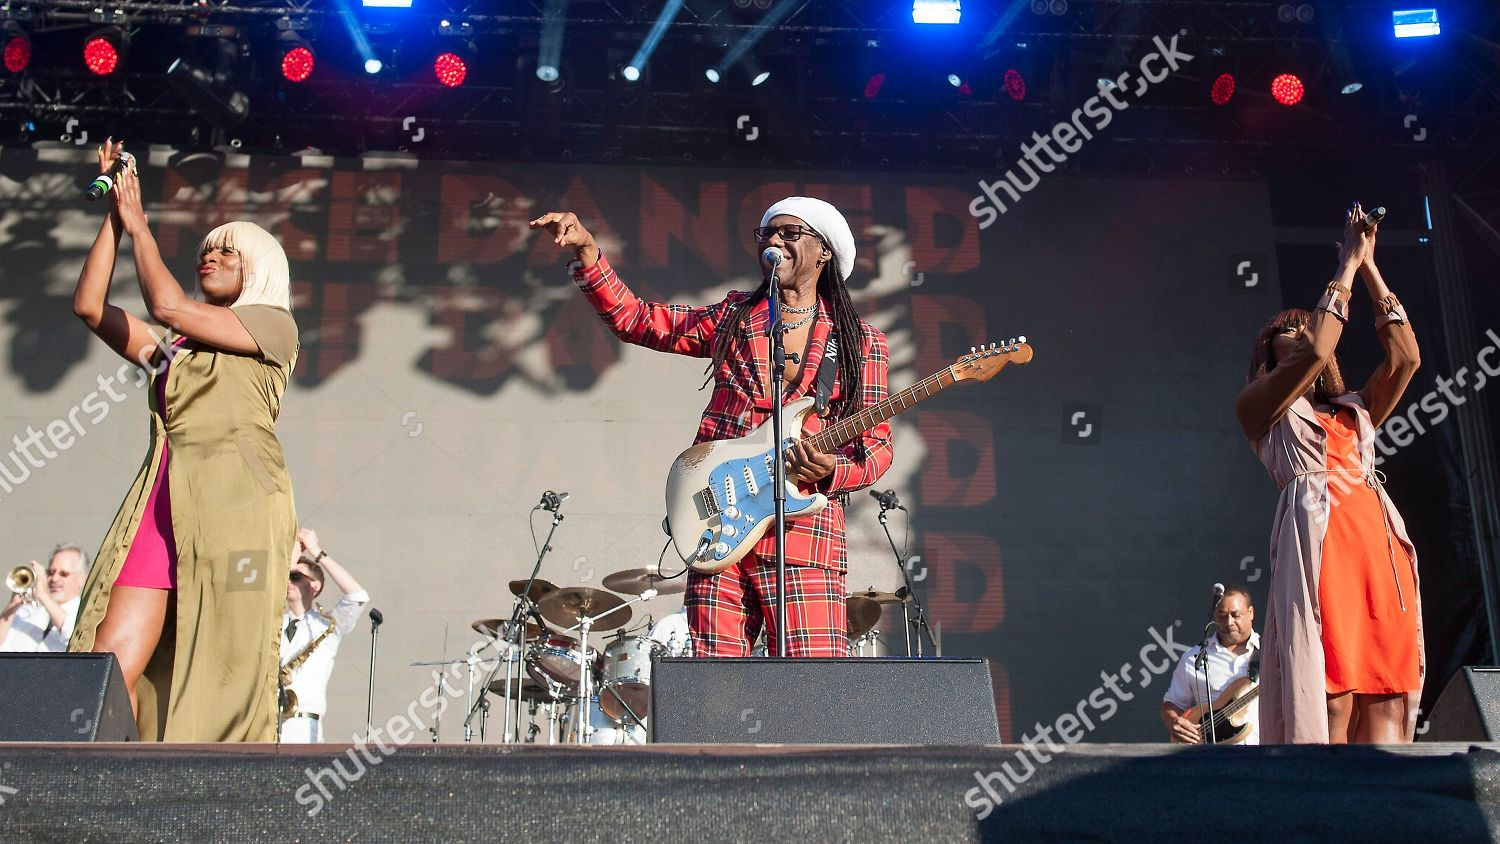 Chic Kimberly Davis Nile Rodgers Norma Jean Editorial Stock Photo